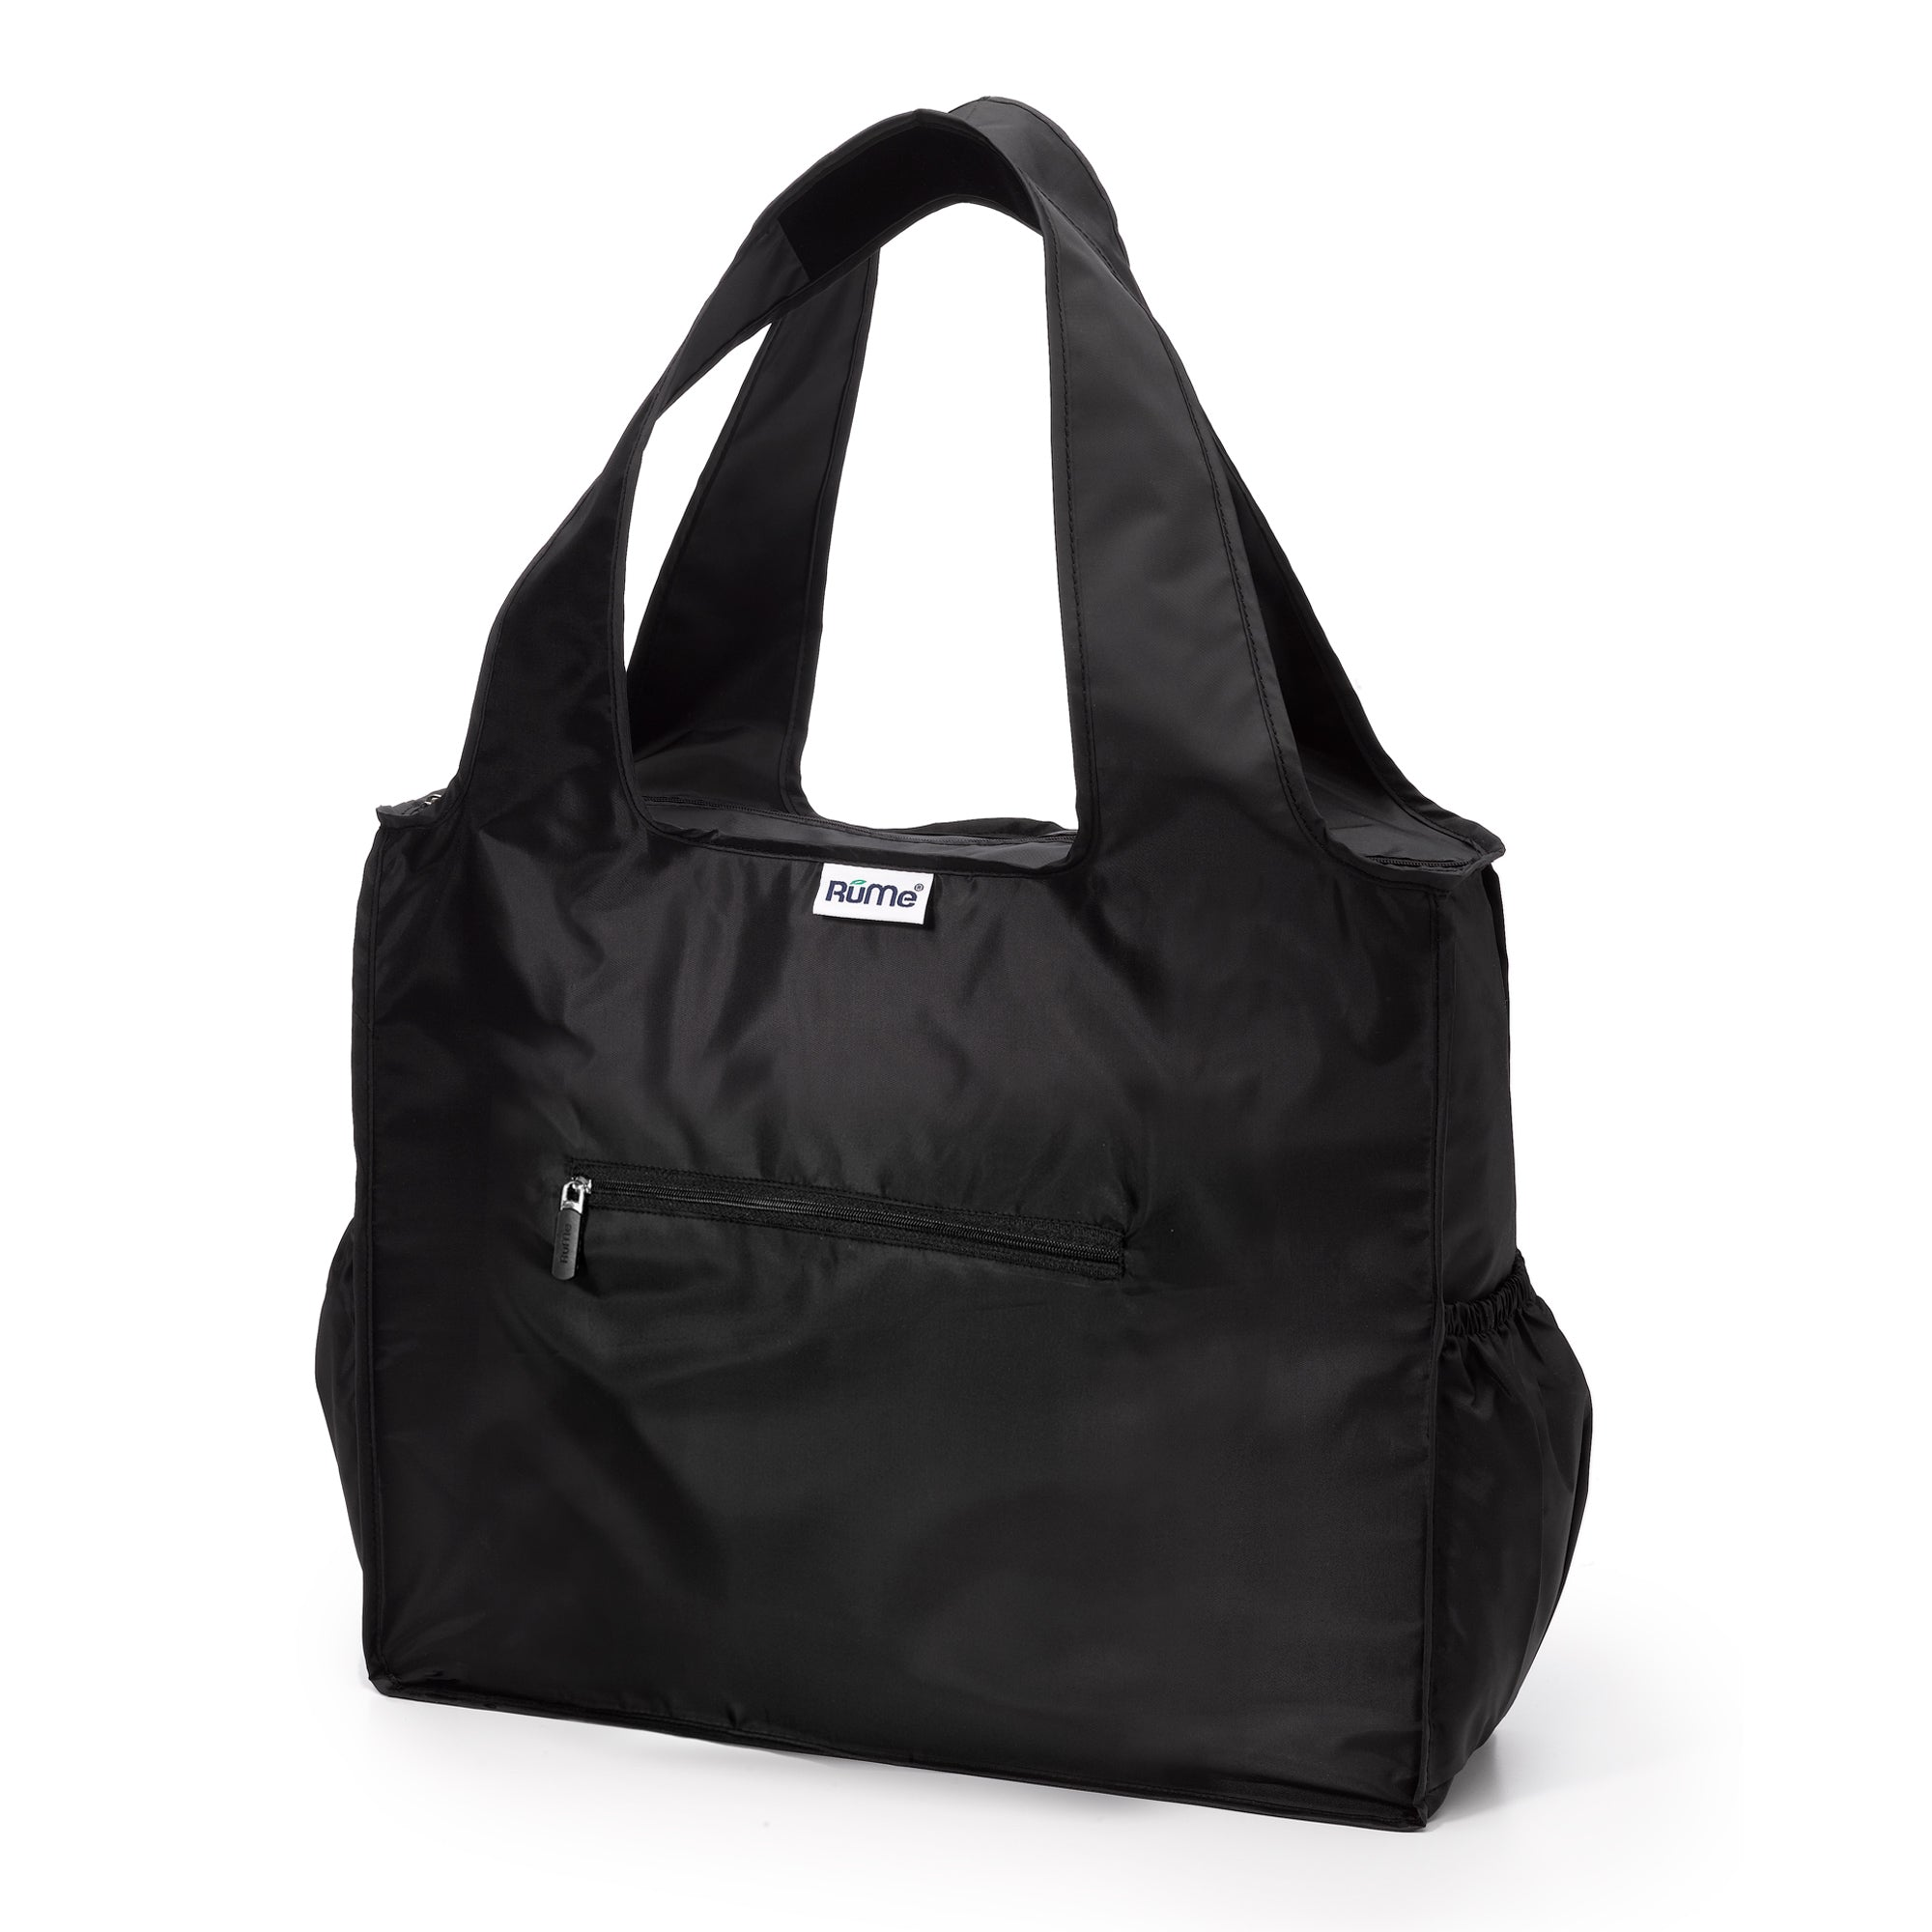 8699009ae5518 RuMe All Everyday Bag - Foldable Tote – MyRuMe.com